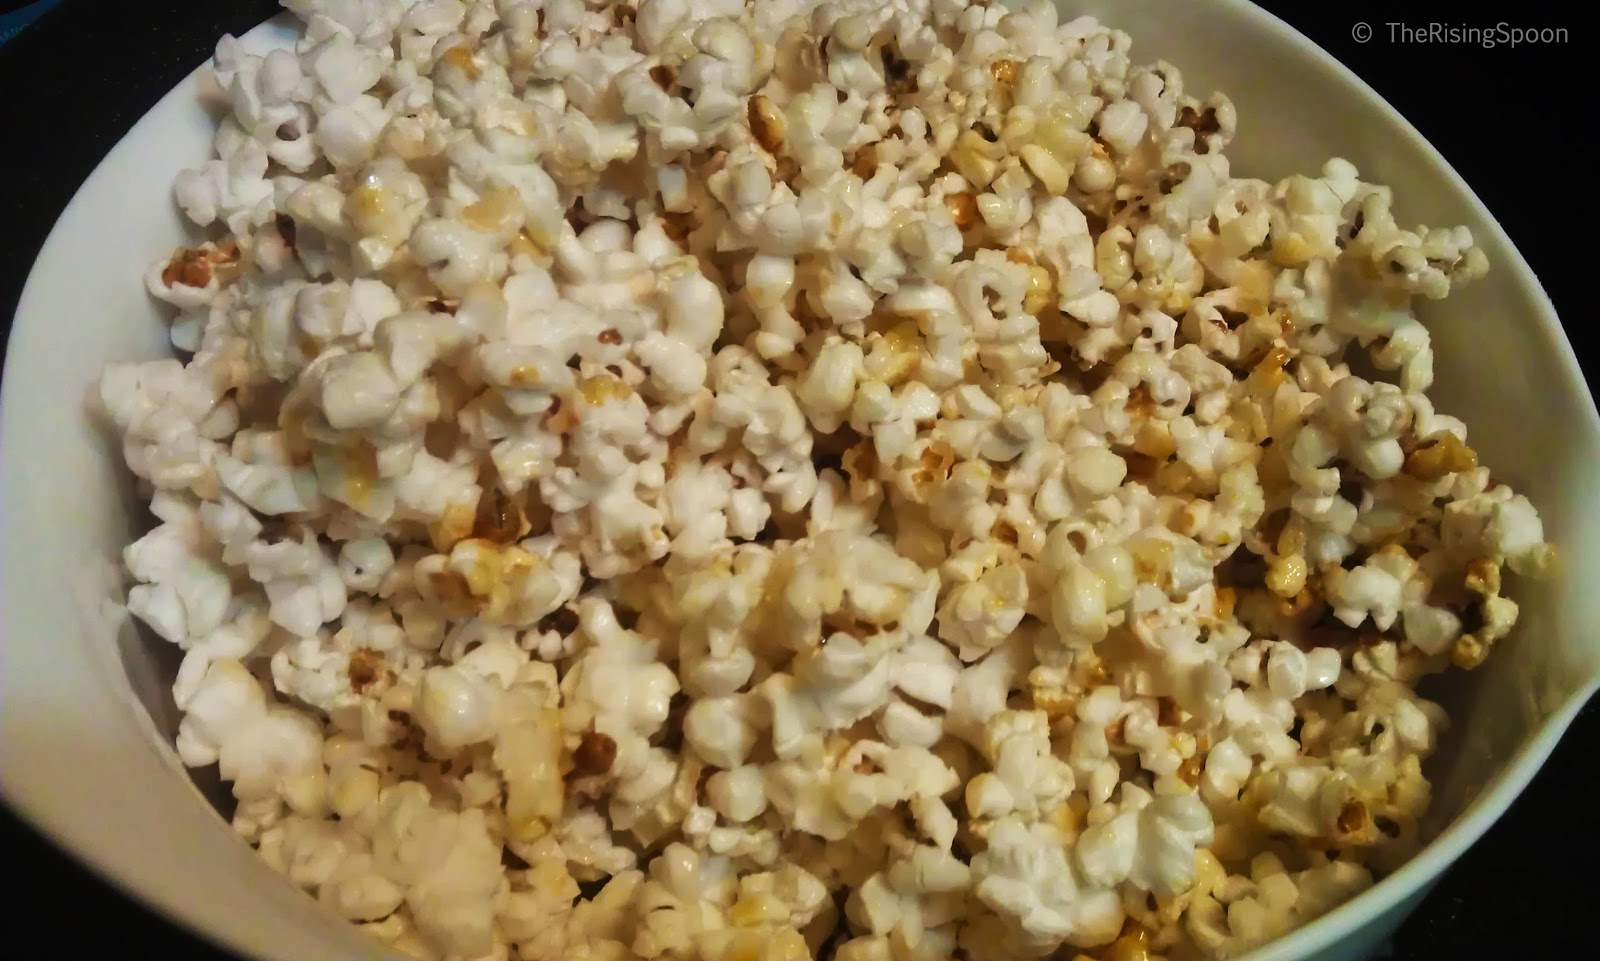 to continue to eat bagged popcorn, at least don't buy the kettle corn ...